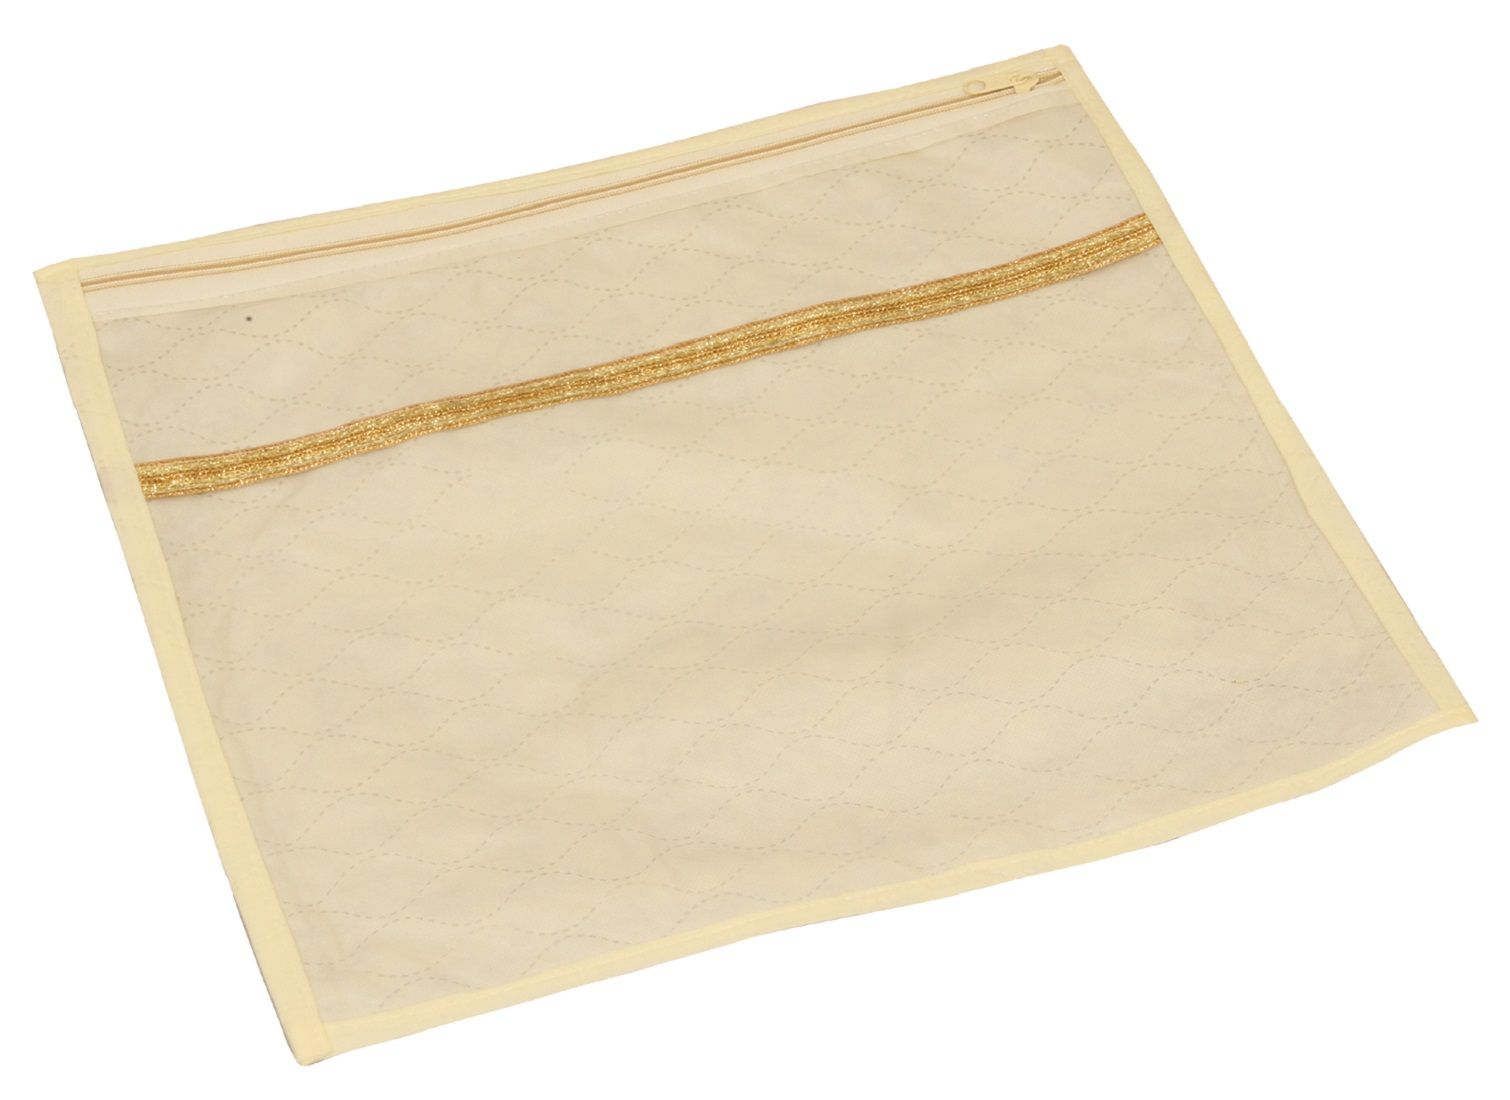 Kuber Industries Non Woven Wardrobe Organizer Saree Cover (Gold) Set of 12 Pcs